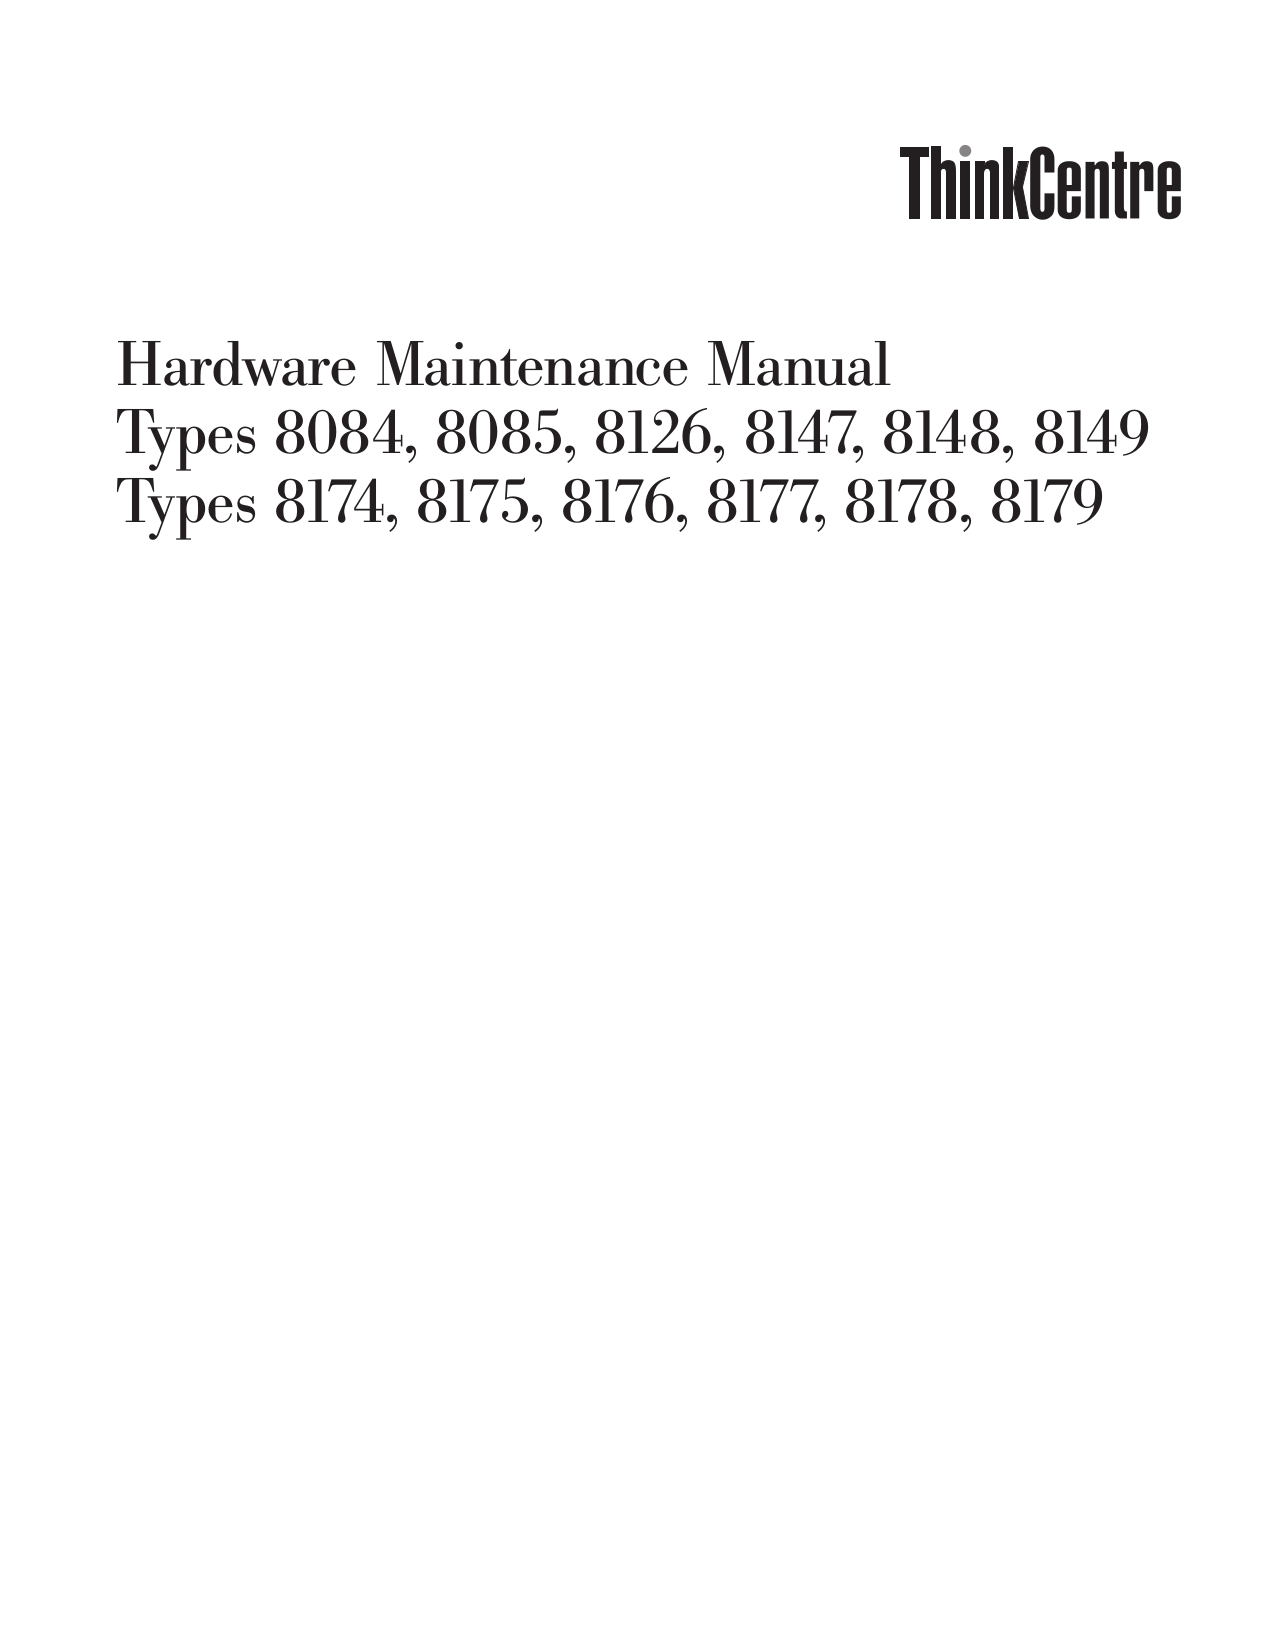 pdf for Lenovo Desktop ThinkCentre A50 8085 manual